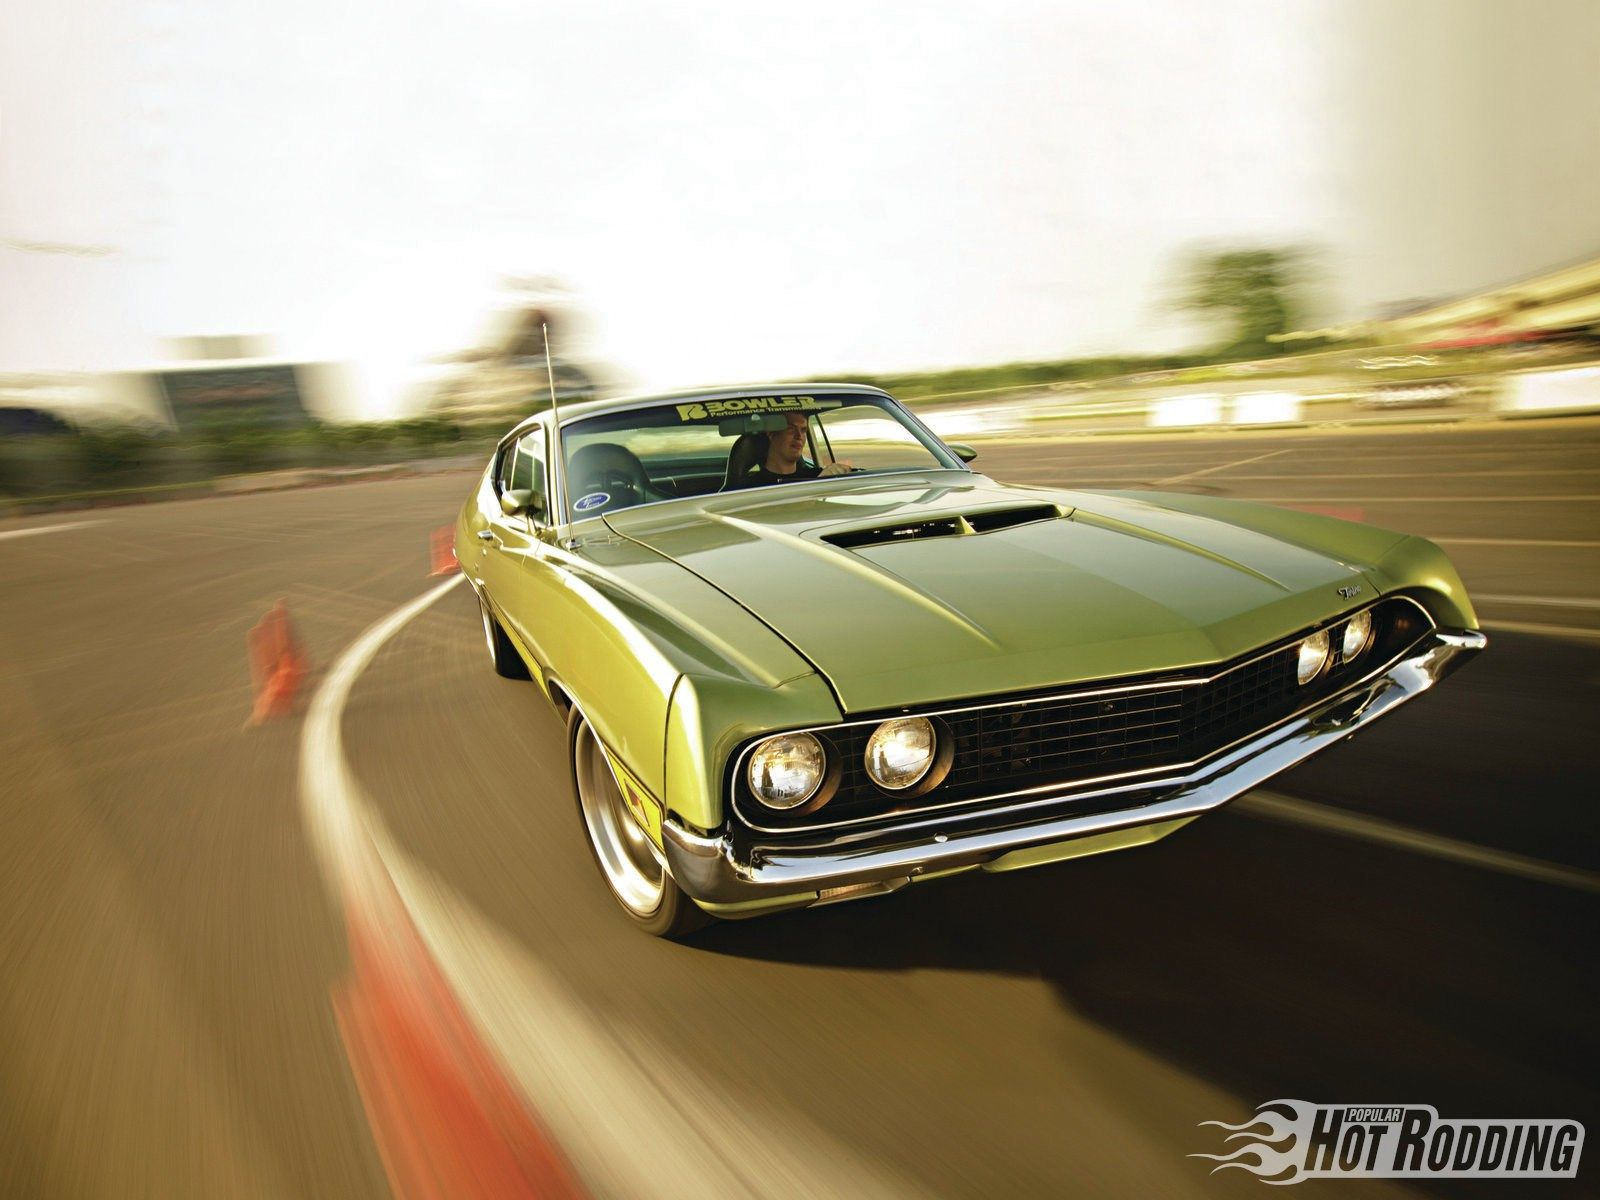 Ford Torino Hd Wallpaper Ford Torino Category Ford